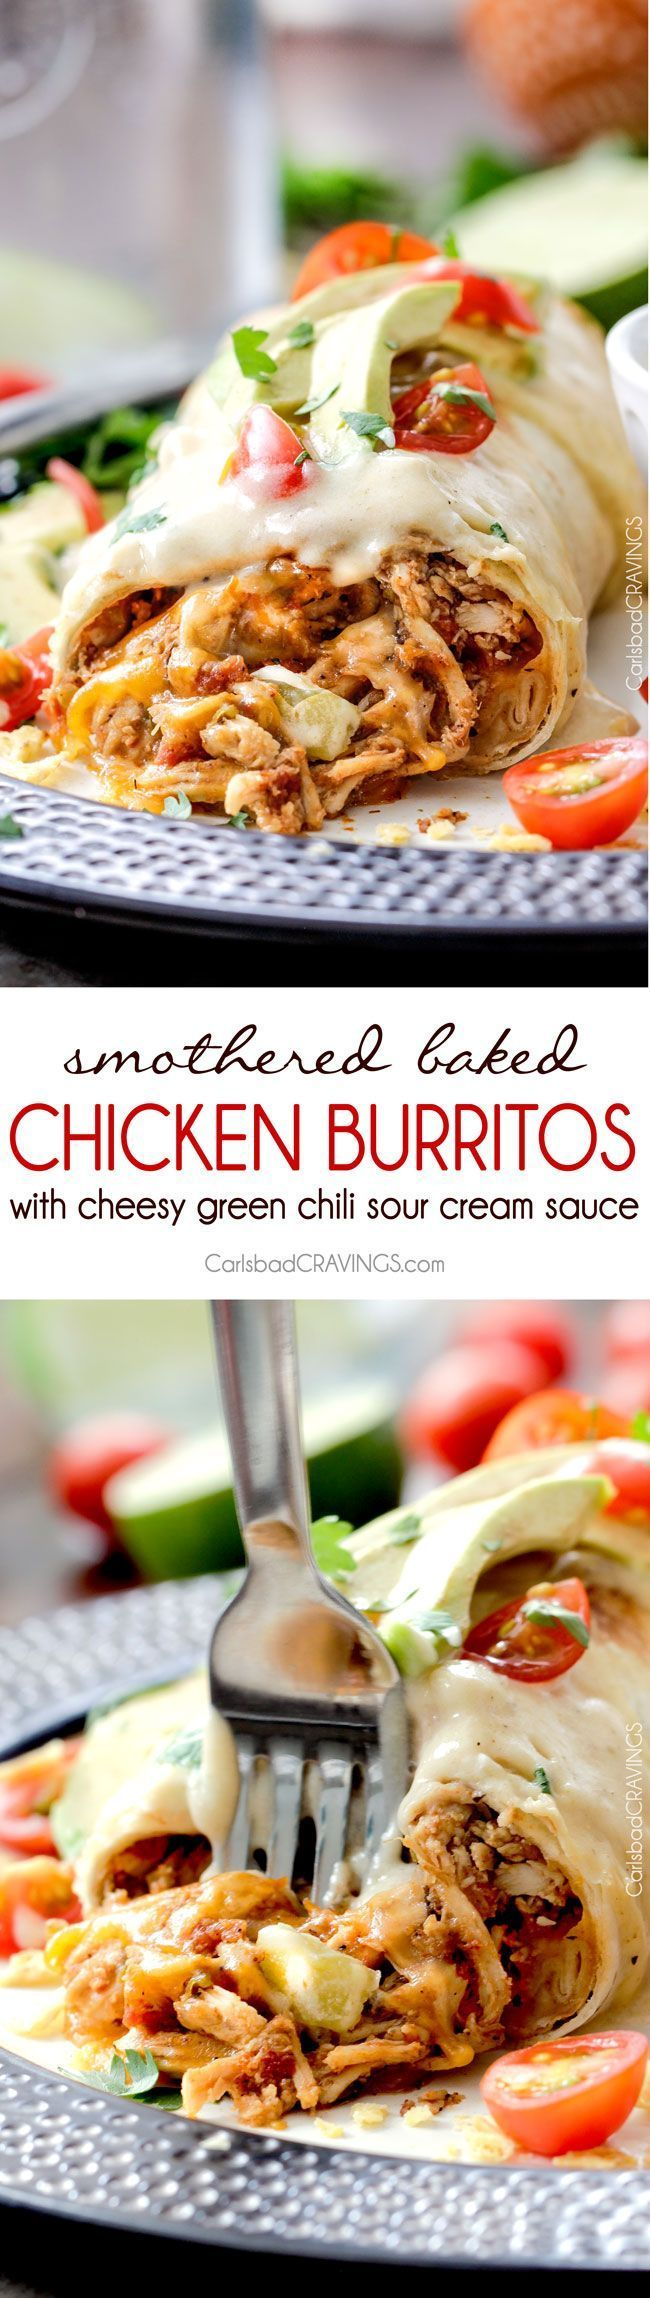 Smothered Baked Chicken Burritos Mexican Food Recipes Recipes Burrito Recipe Chicken